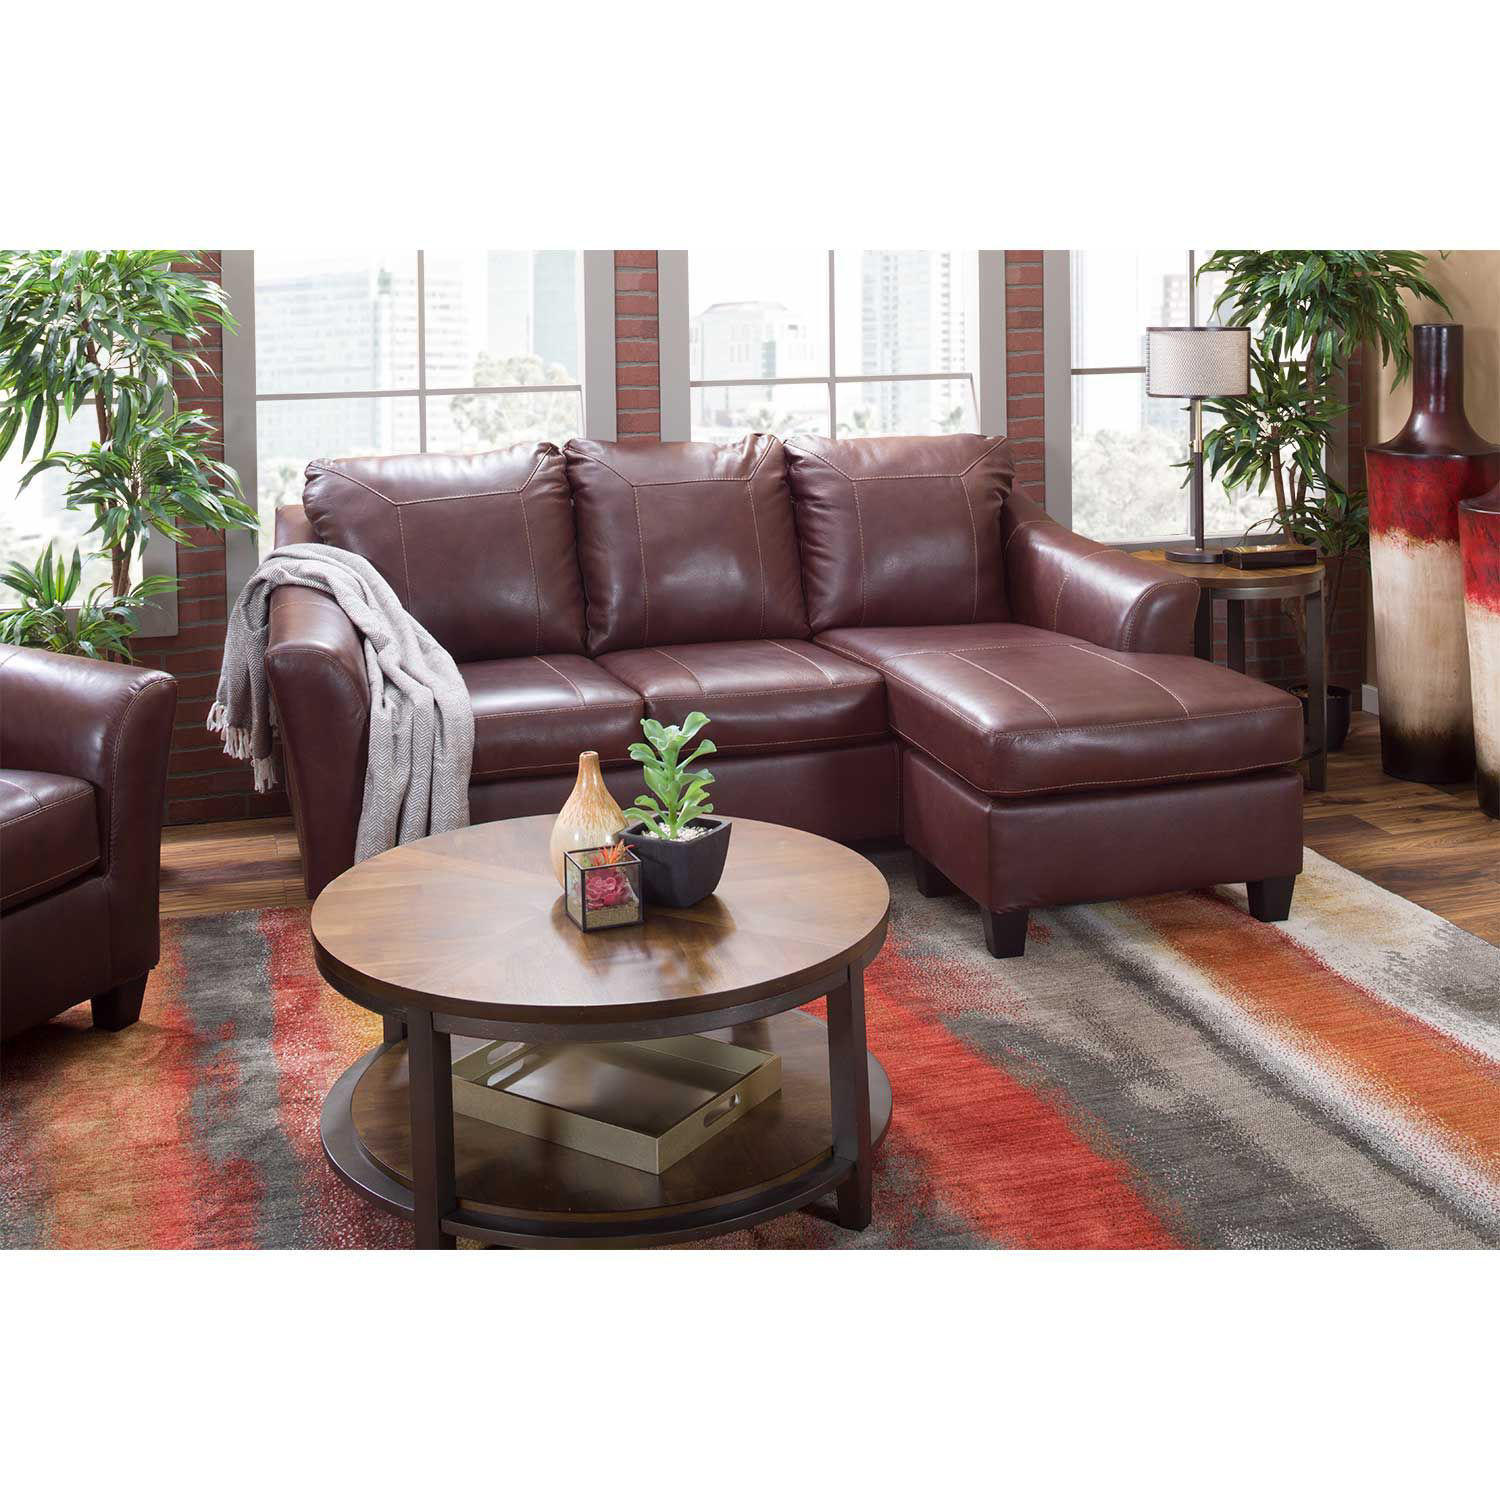 Picture of Fortney Mahogany Italian Leather Chair